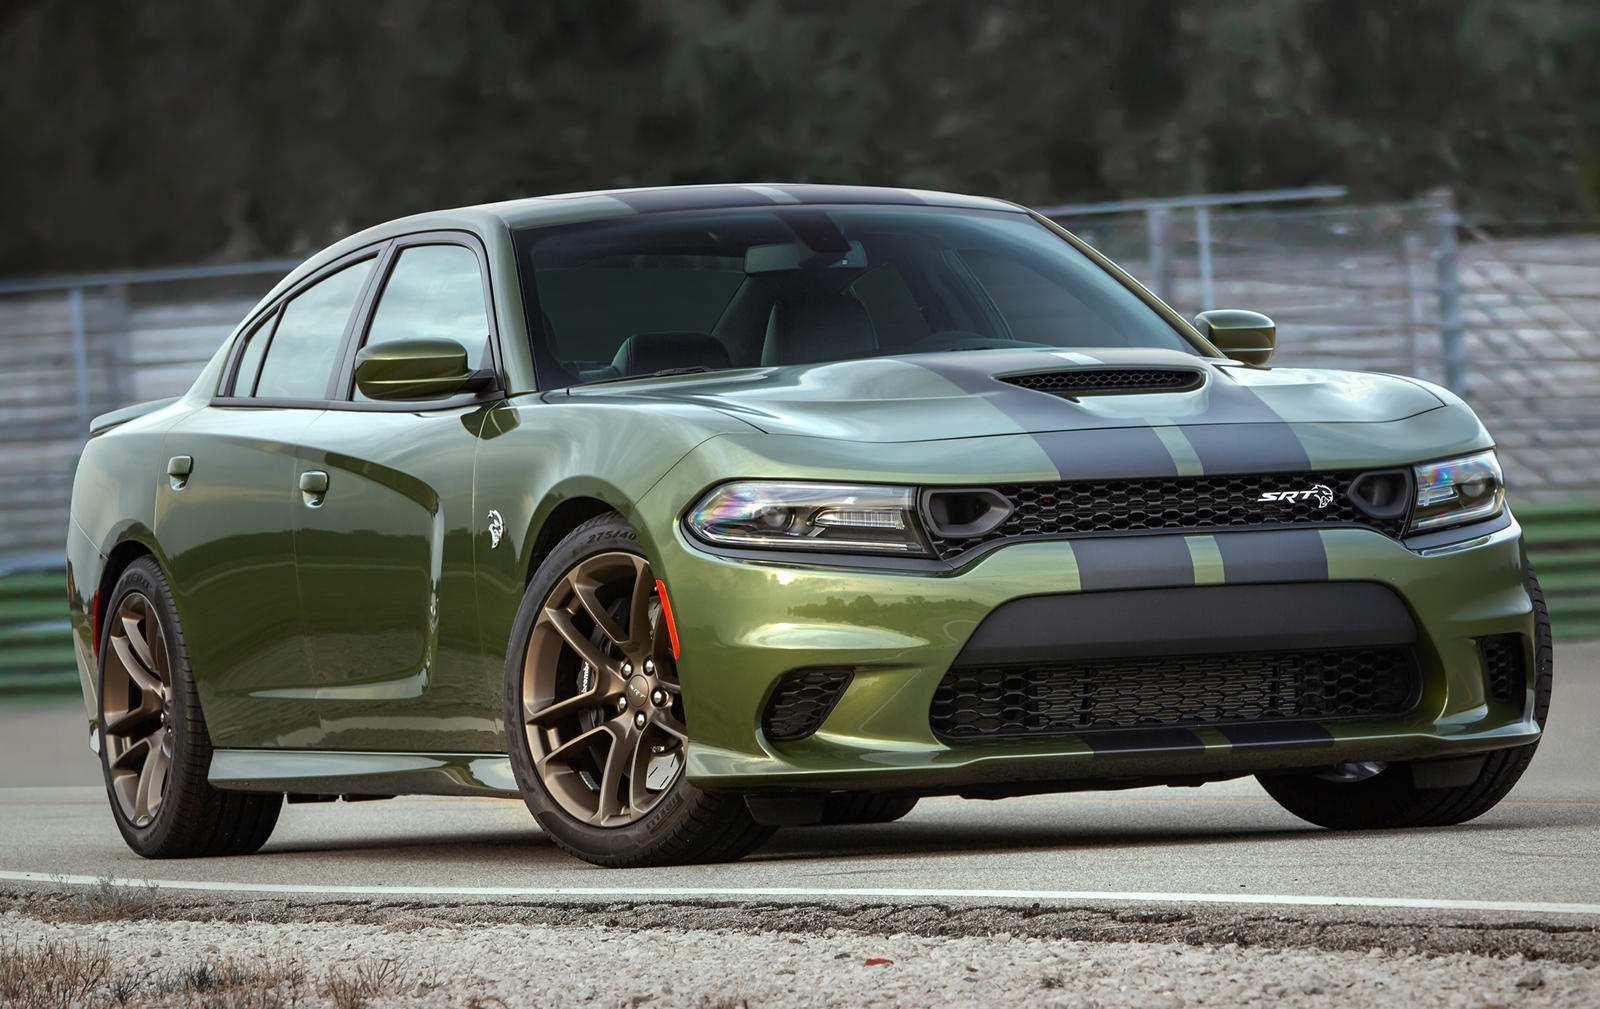 91 Gallery of 2020 Dodge Charger Scat Pack Widebody Style with 2020 Dodge Charger Scat Pack Widebody